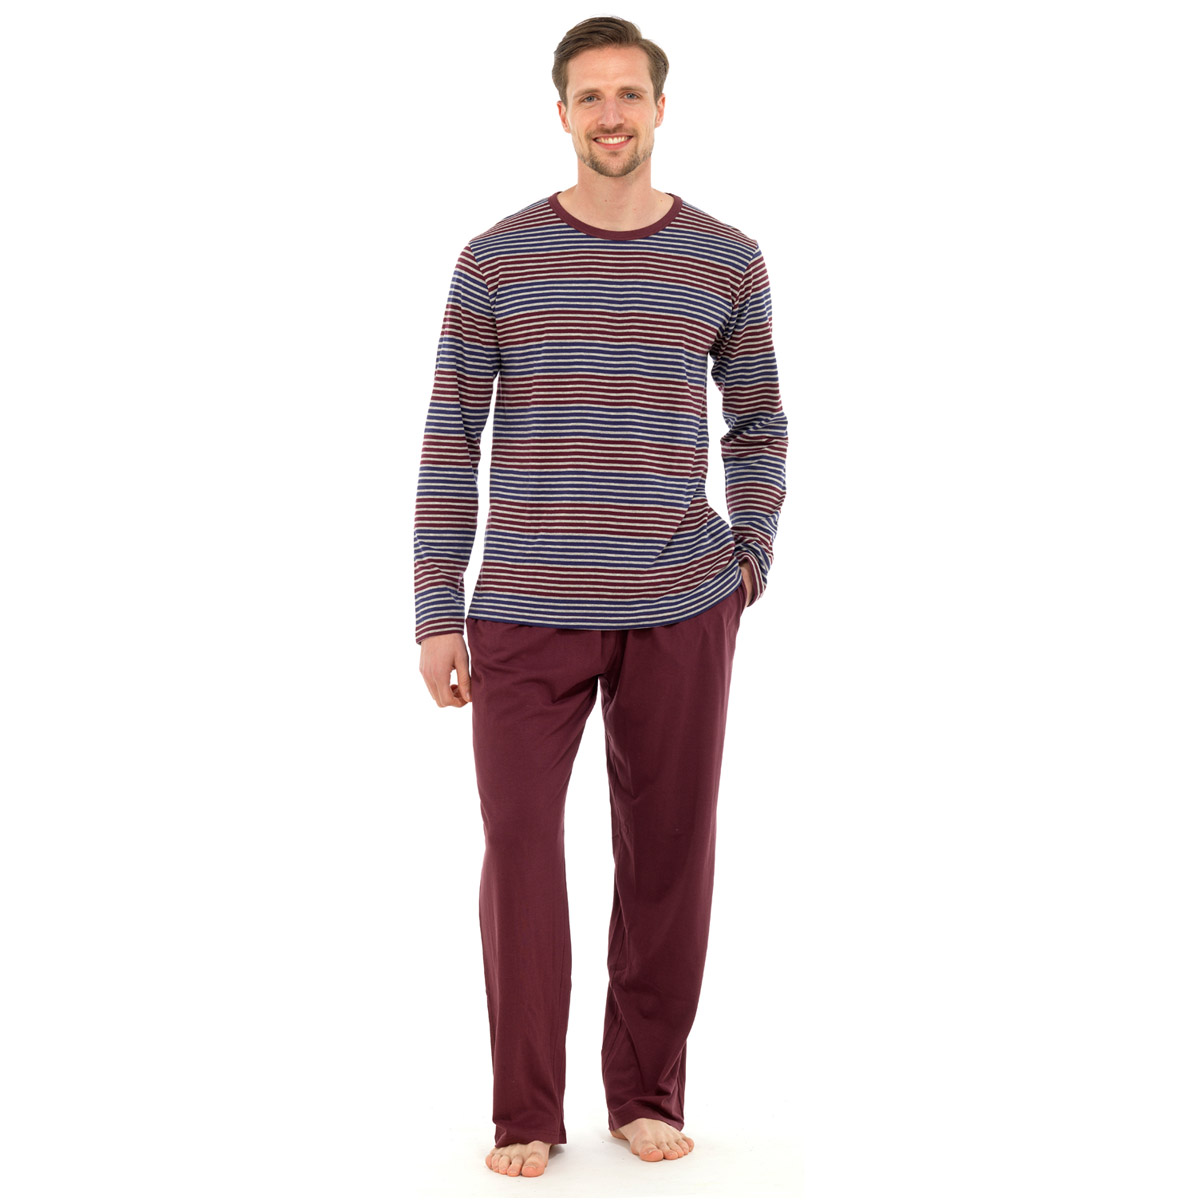 Shop men's sleepwear and loungewear at Bare Necessities! Our selection of comfortable nightwear includes pajamas, pajama sets, robes, sweatpants and more. Bare Necessities is the only online intimates retailer to offer certified Bra Fit Experts to its customers!